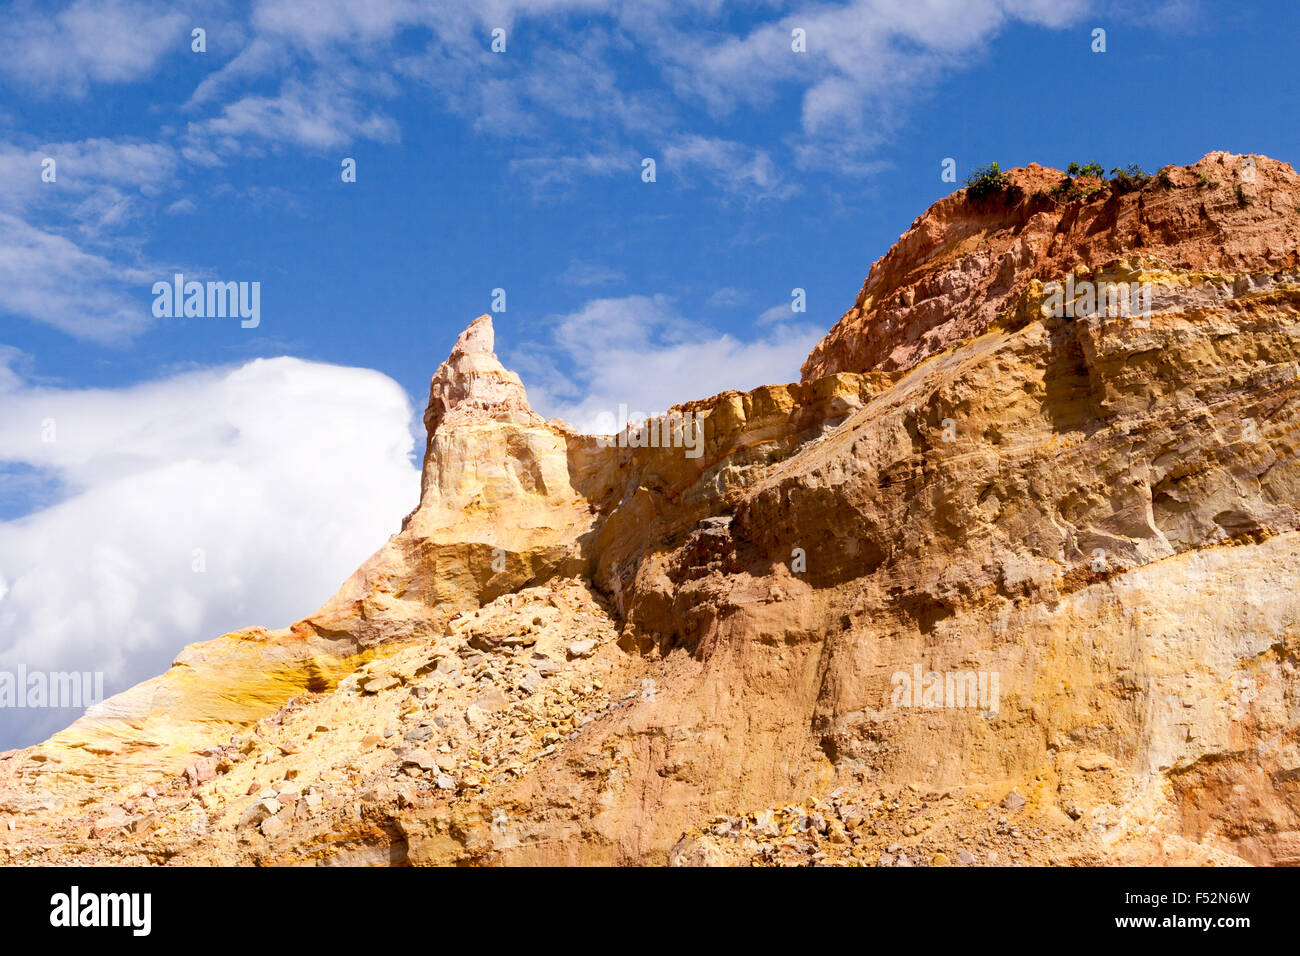 Gold Open Pit Mining Or Quarry Platform Deep In The Amazon Basin - Stock Image